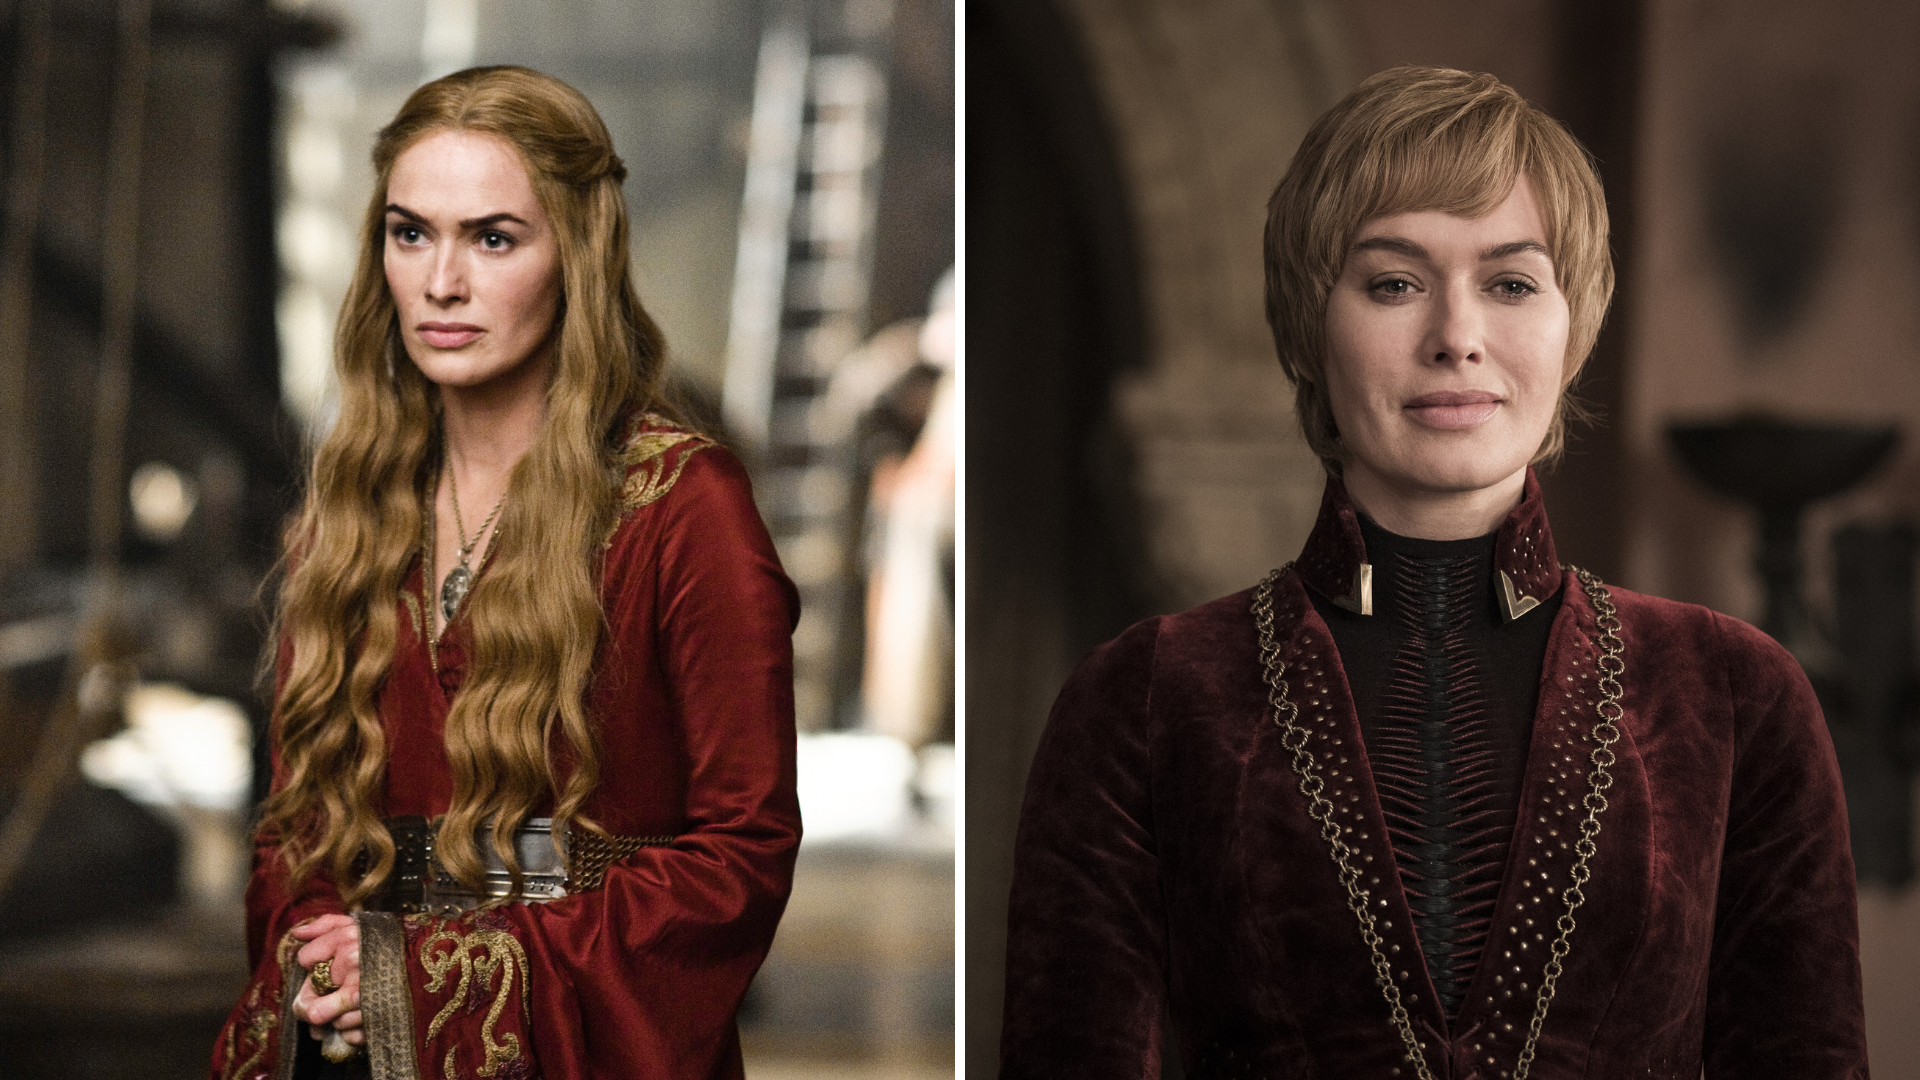 Game of Thrones - Cersei